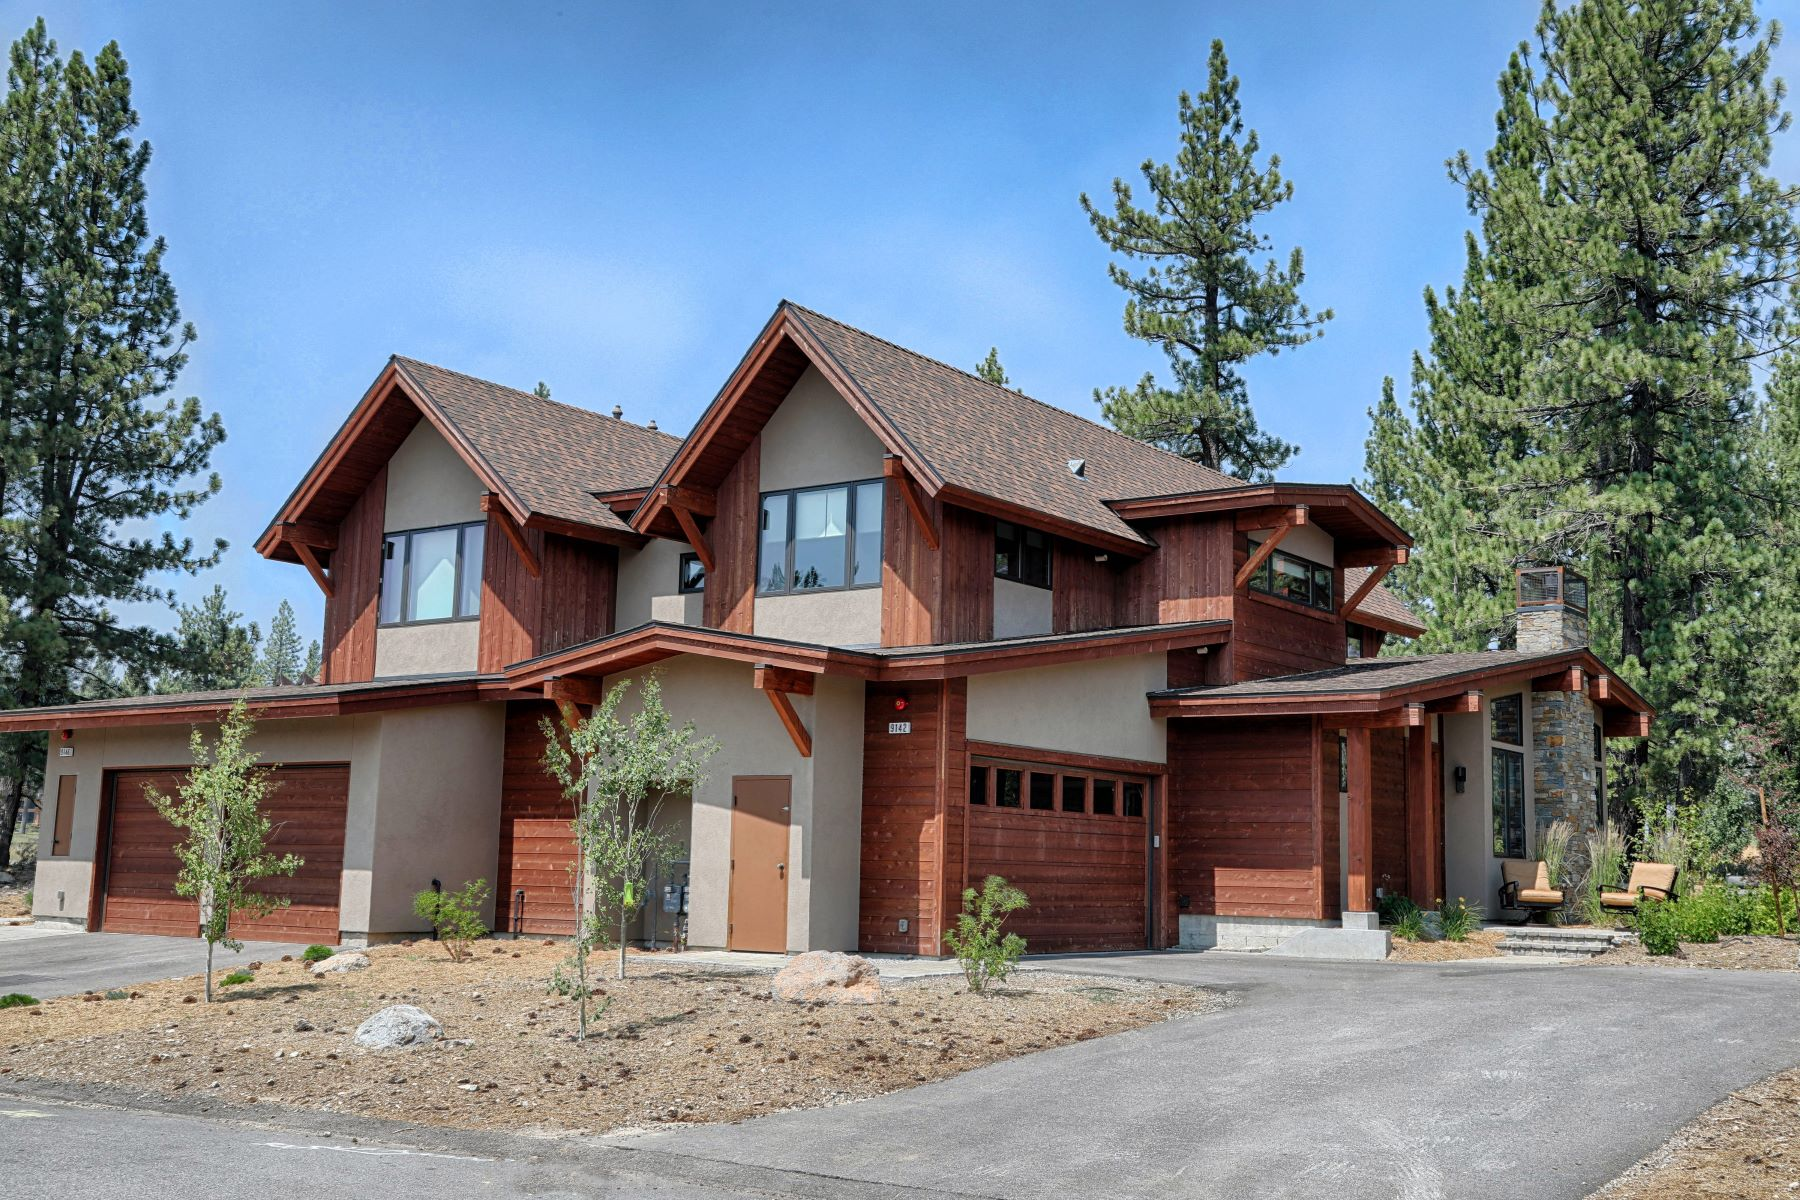 Single Family Home for Active at 9142 Heartwood, Truckee, CA 9142 Heartwood Drive Truckee, California 96161 United States